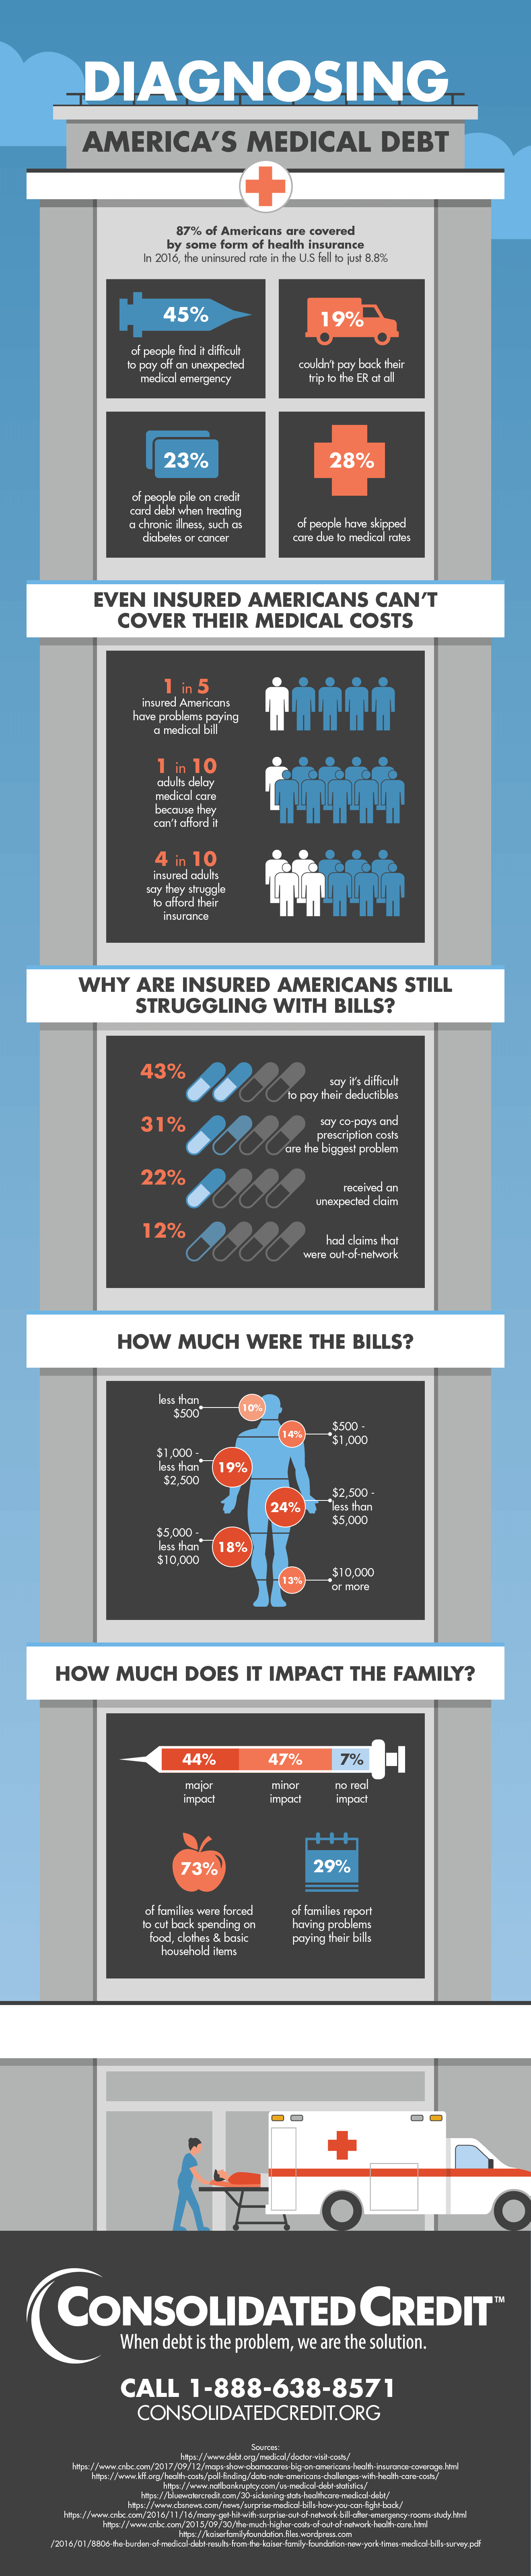 Dianosing America's Medical Debt Infographic